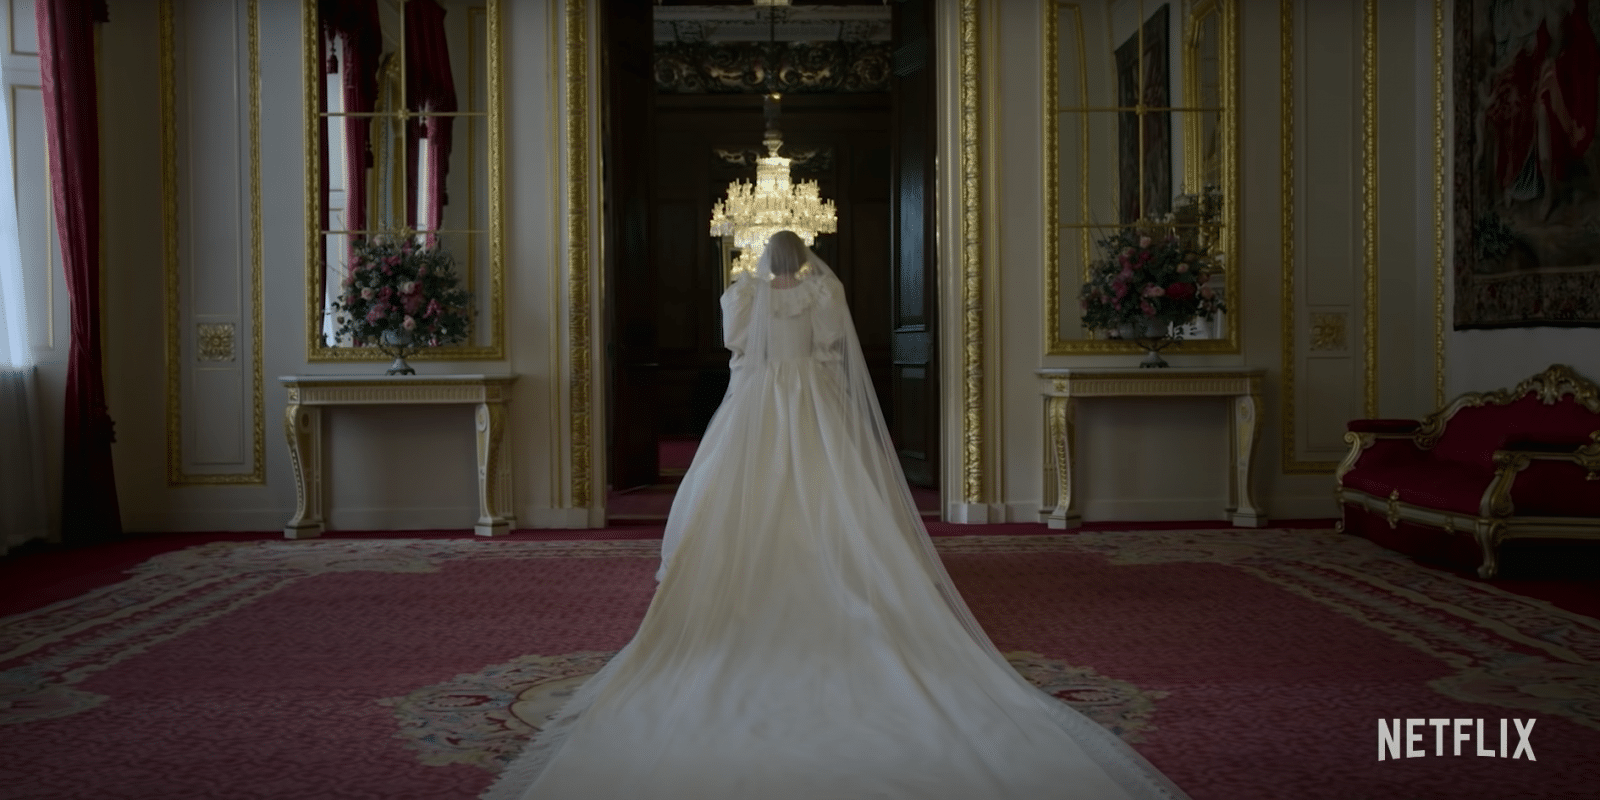 Princess Diana Wedding Dress in The Crown